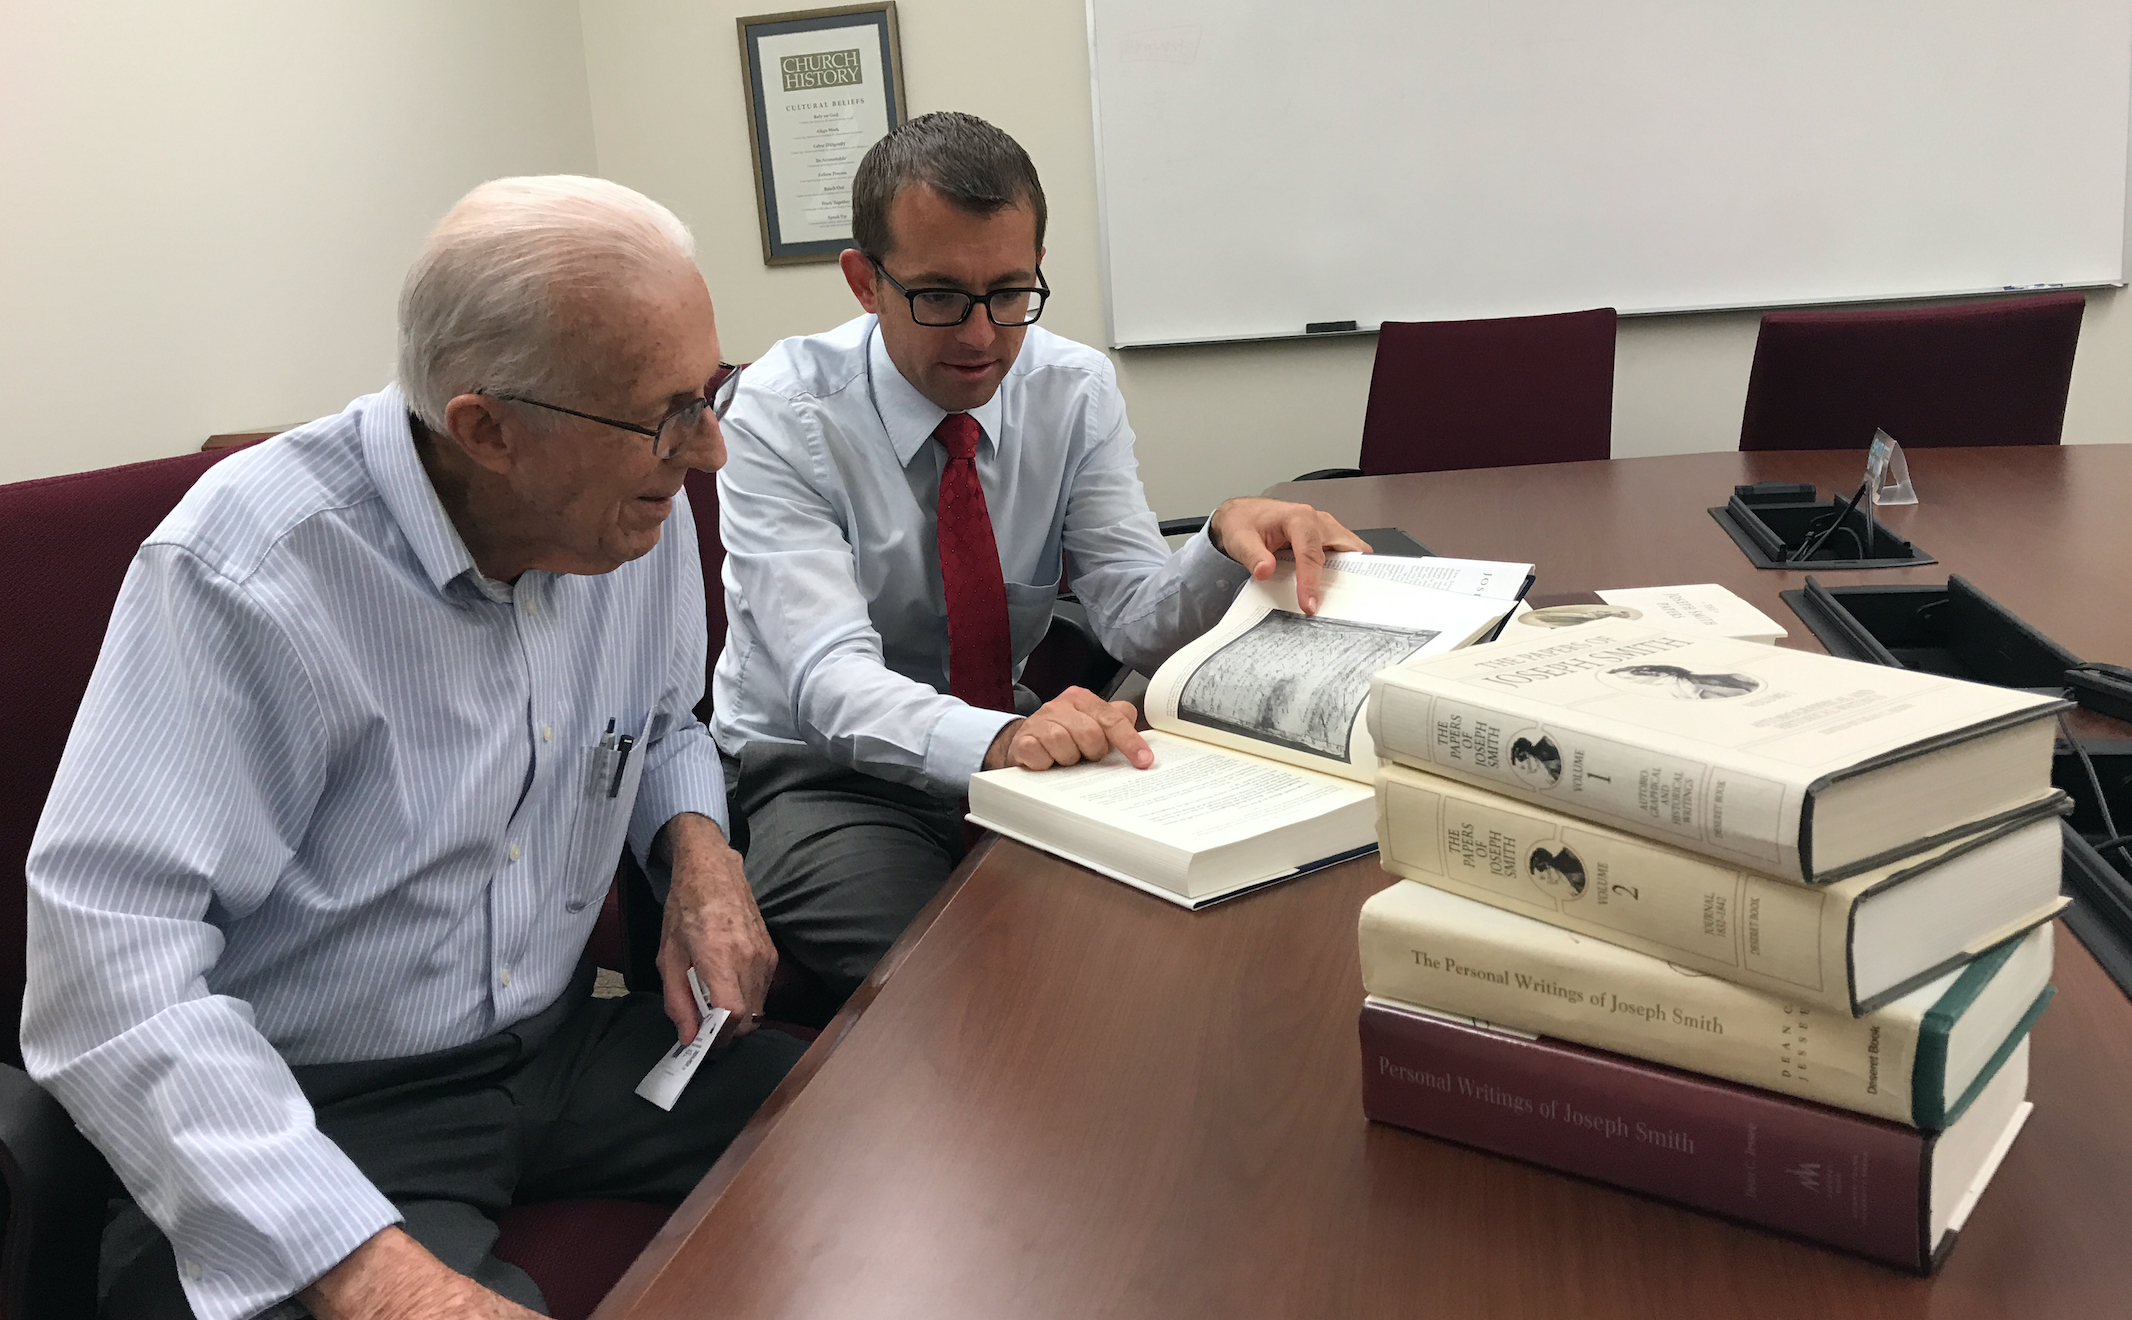 Dean C. Jessee, left, is one of the founders of the Joseph Smith Papers project. He and Nathan Waite, an associate editorial manager, look through some of the recent volumes of the Joseph Smith Papers.